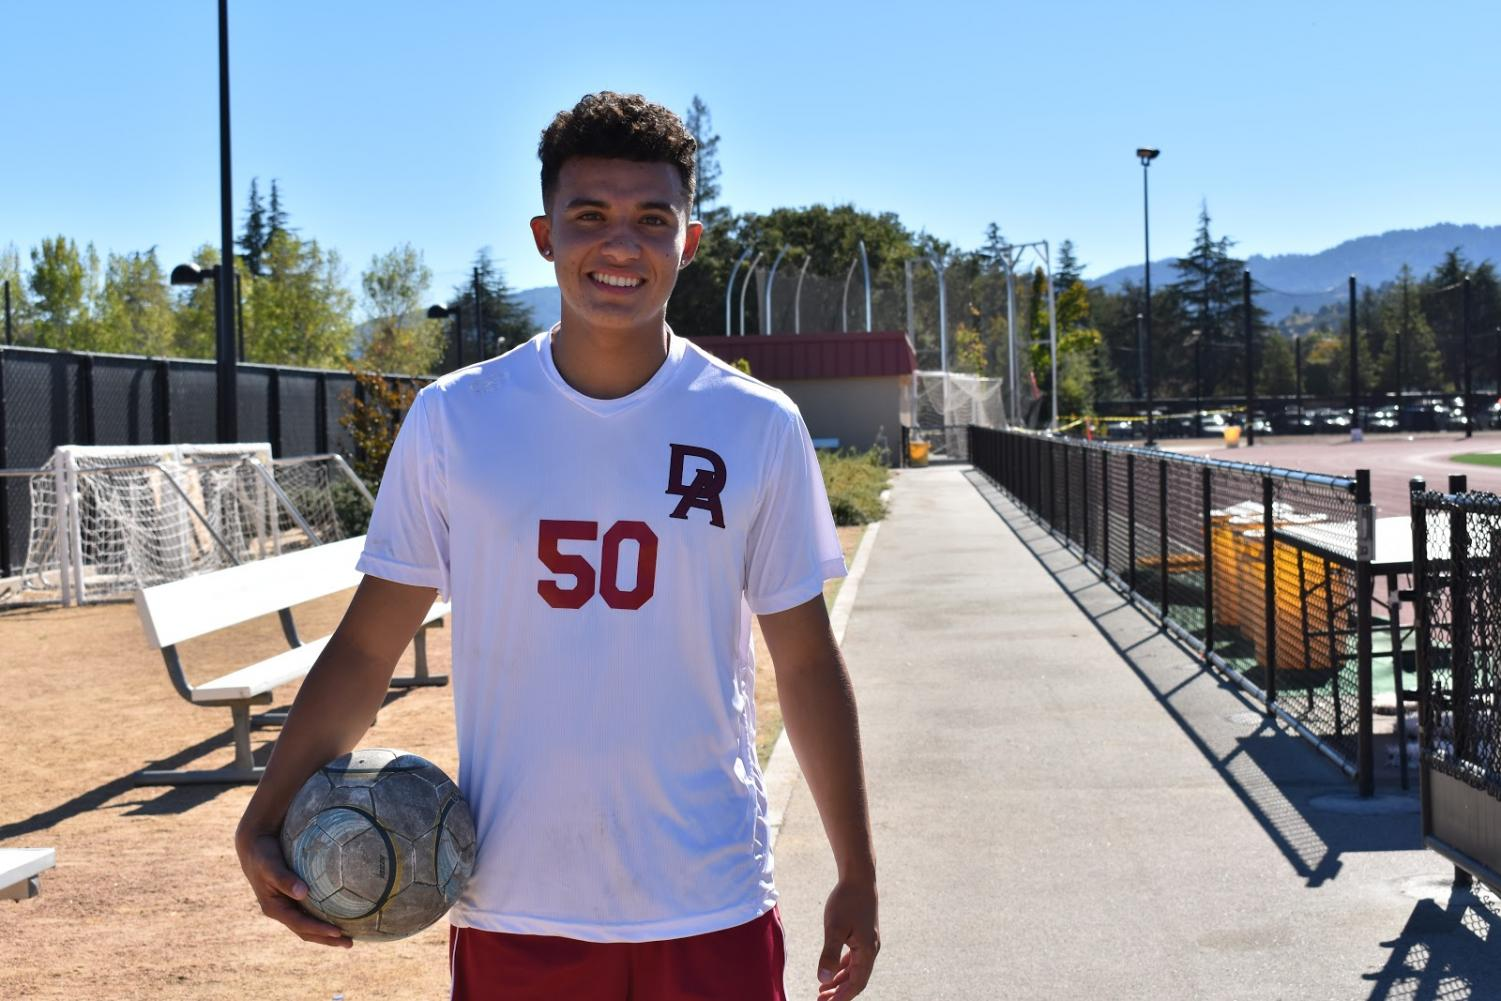 Christian Mendoza, a right back for De Anza's men's soccer team, practices for the Dons' upcoming game on Nov. 7 at 2 p.m. He says eating fruit helps him feel light on game day.